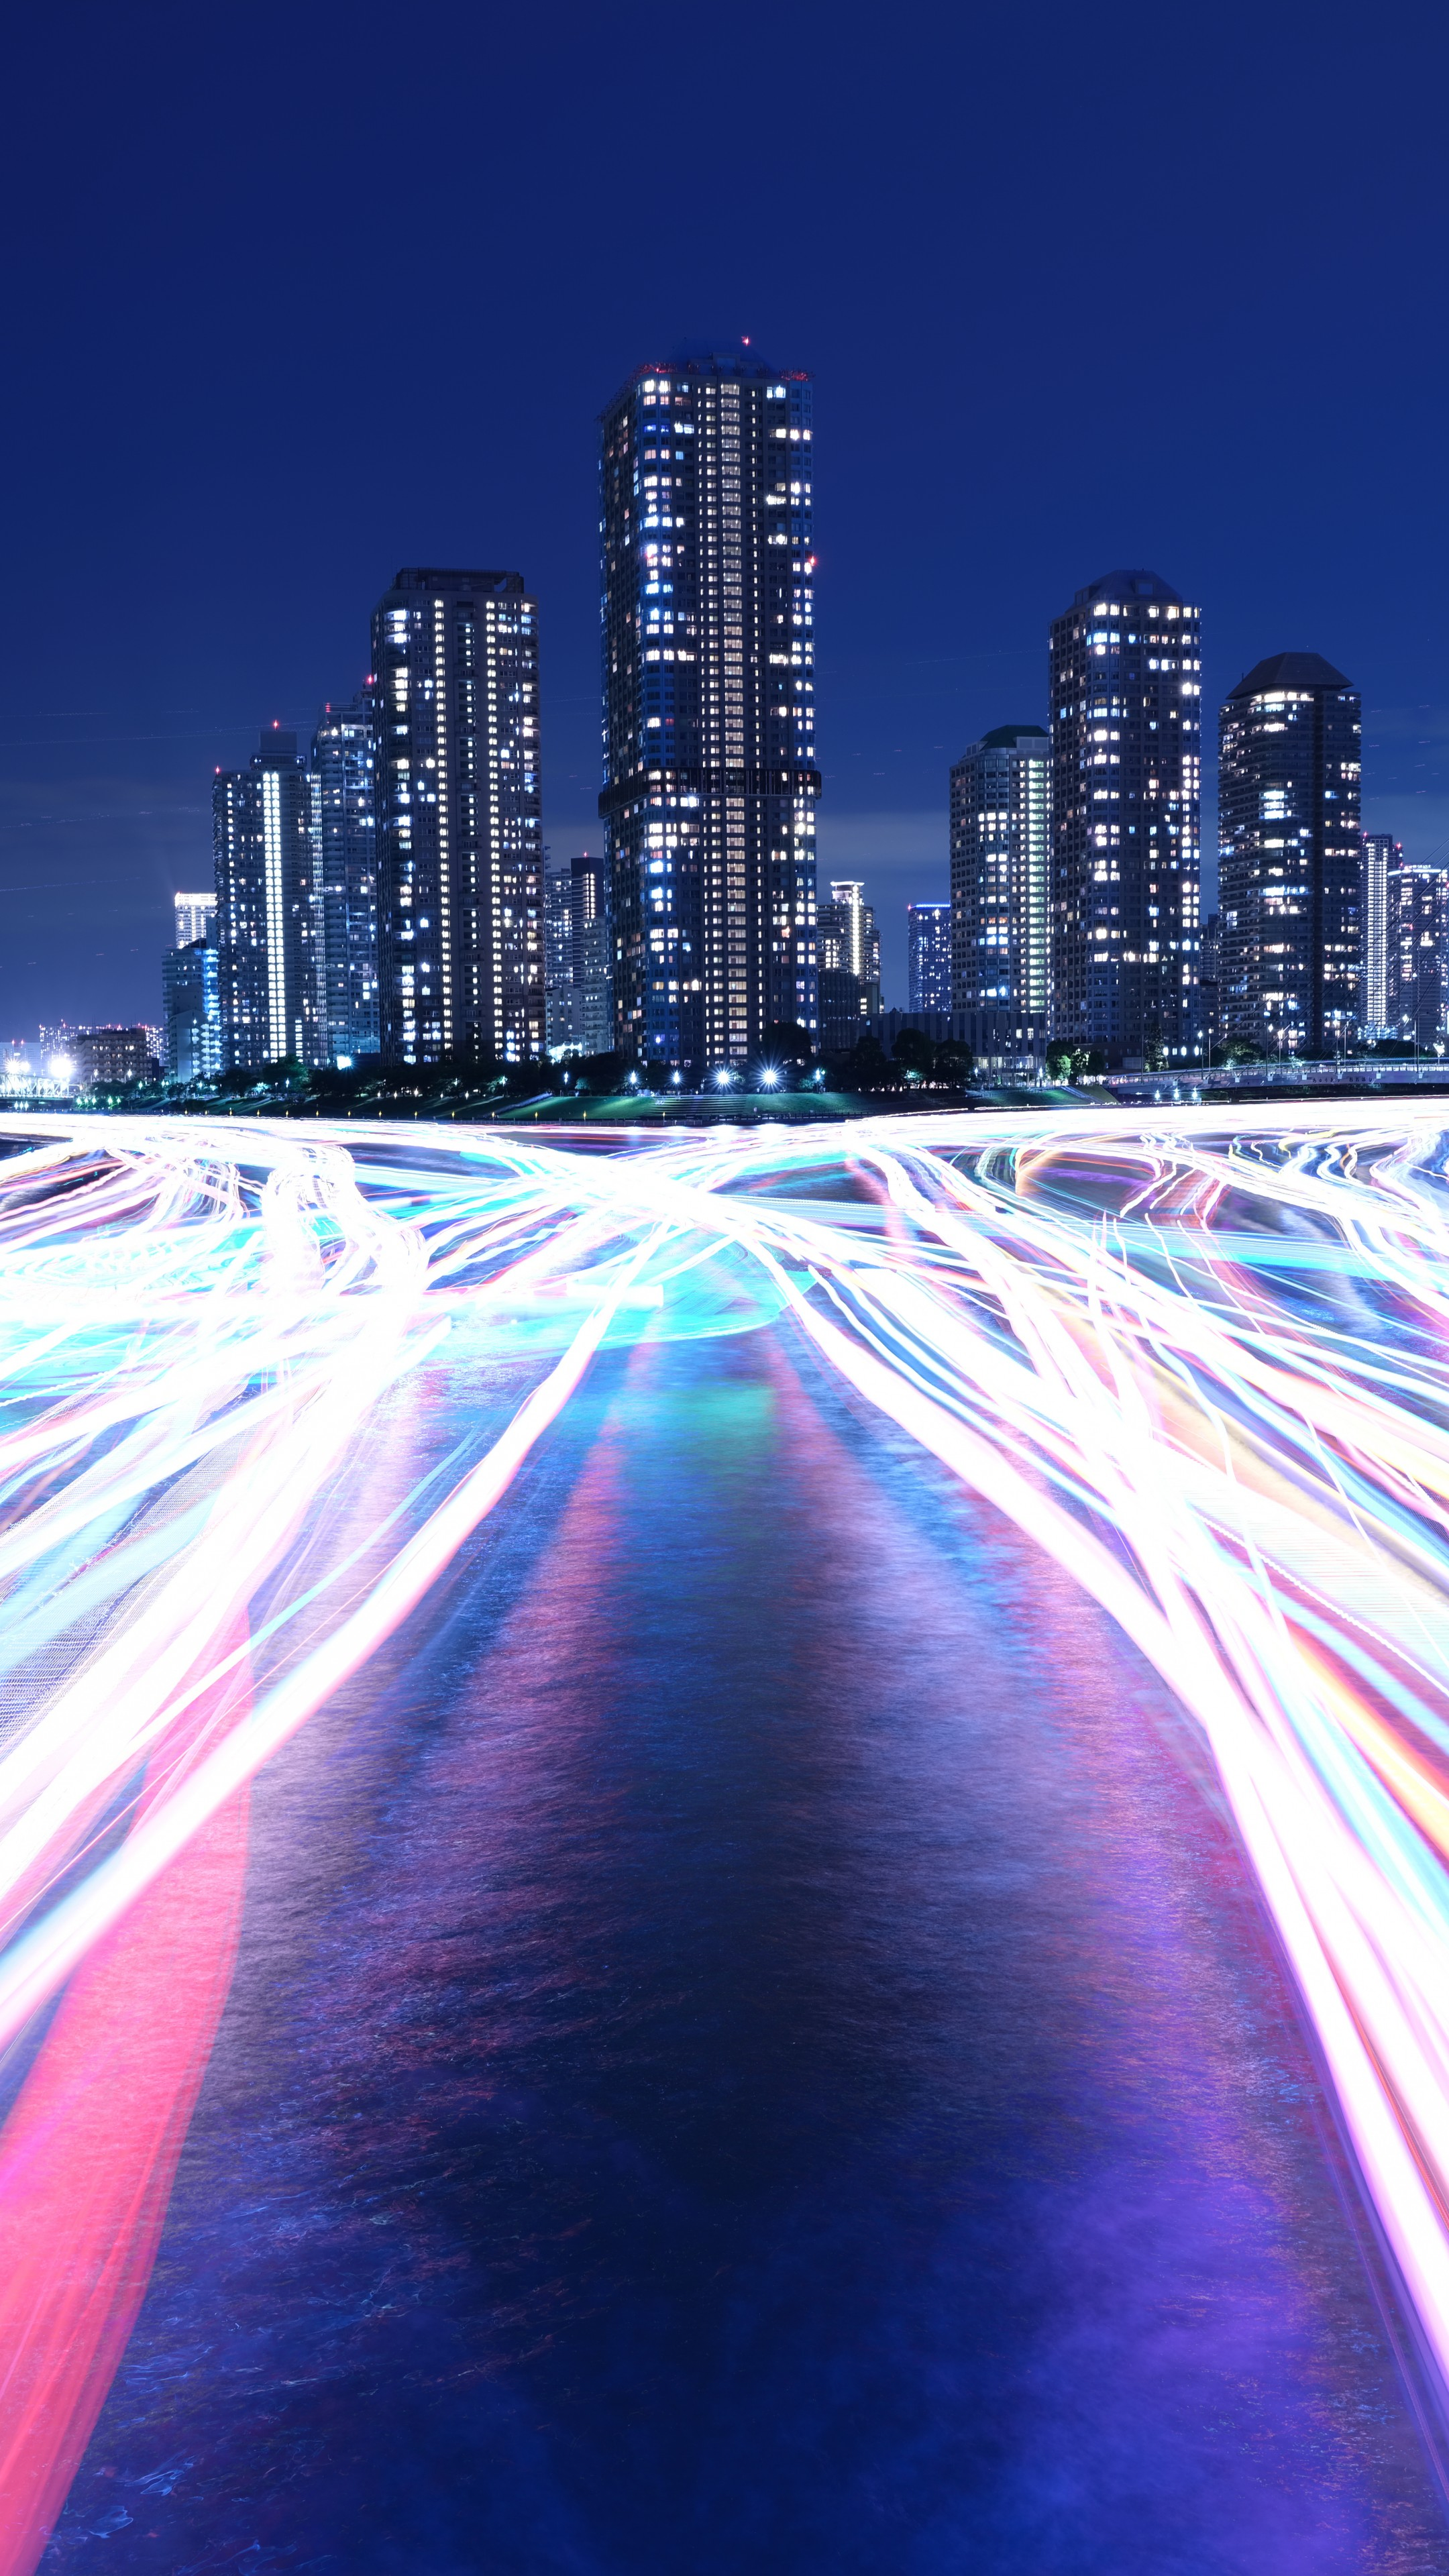 Wallpaper City Light Night River 4k 8k Architecture